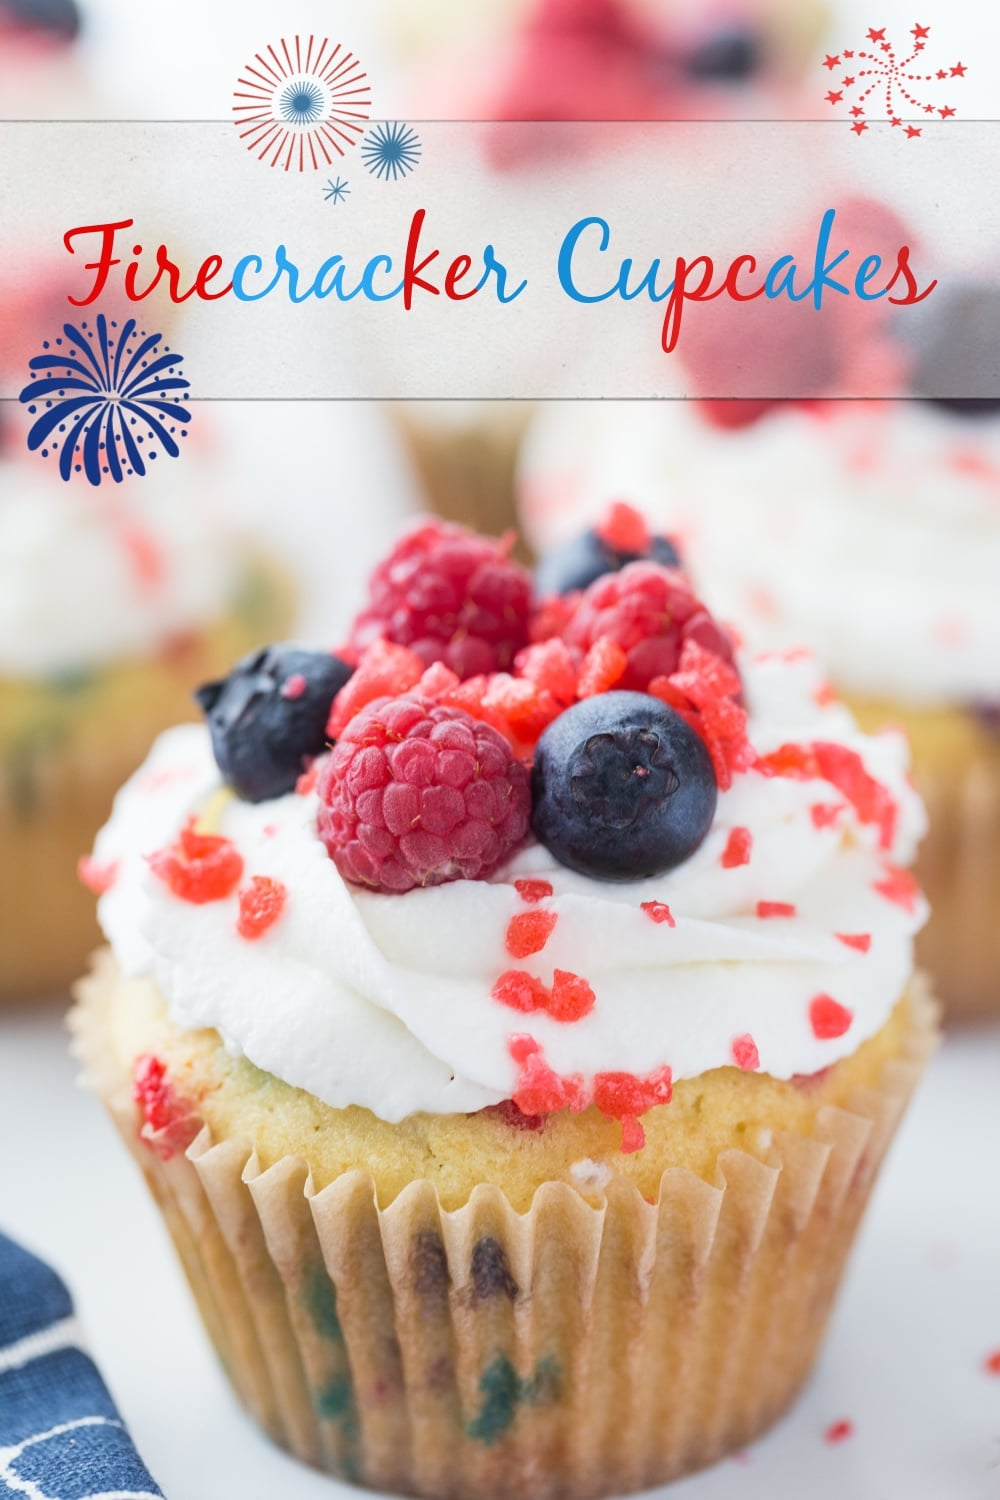 Firecracker Cupcakes - homemade funfetti cupcakes with a snap, crackle and pop finish. The perfect patriotic treat for all summer gatherings. via @cmpollak1